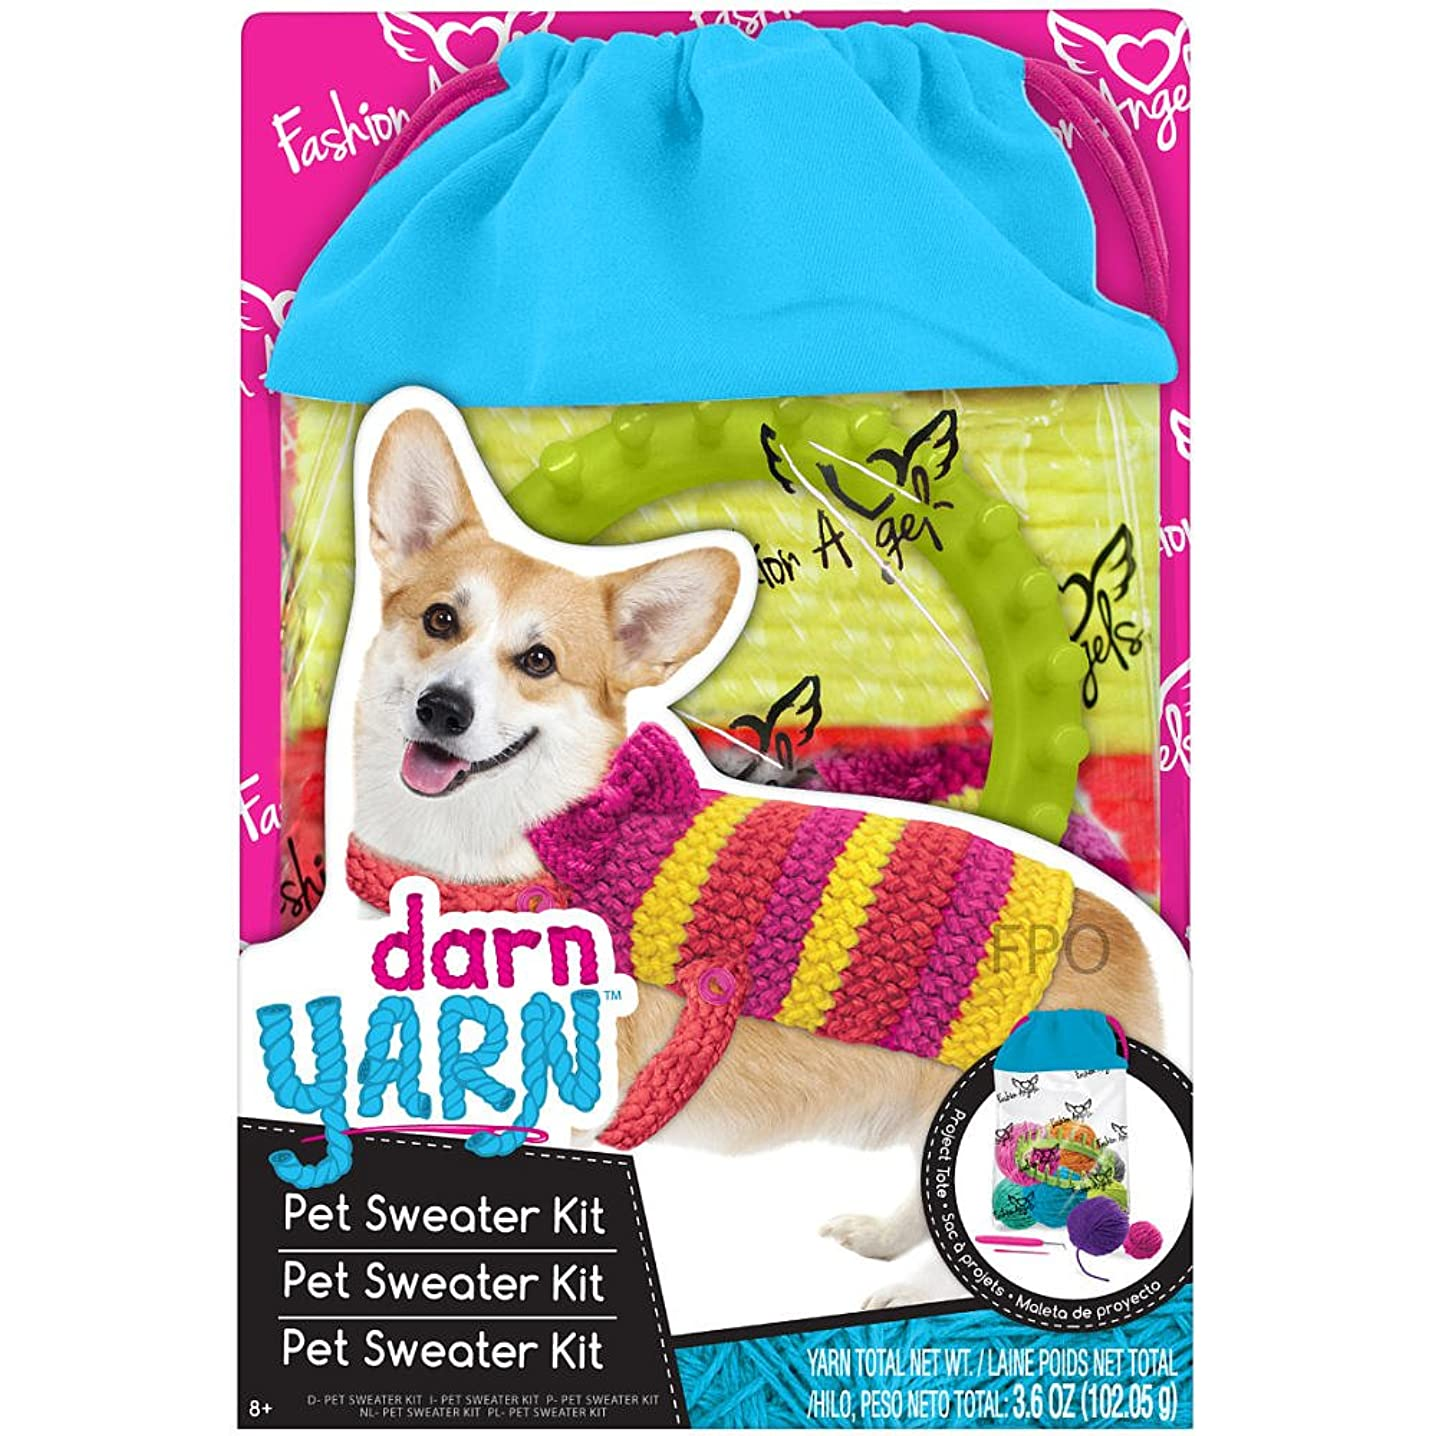 Darn Yarn: Pet Sweater Kit